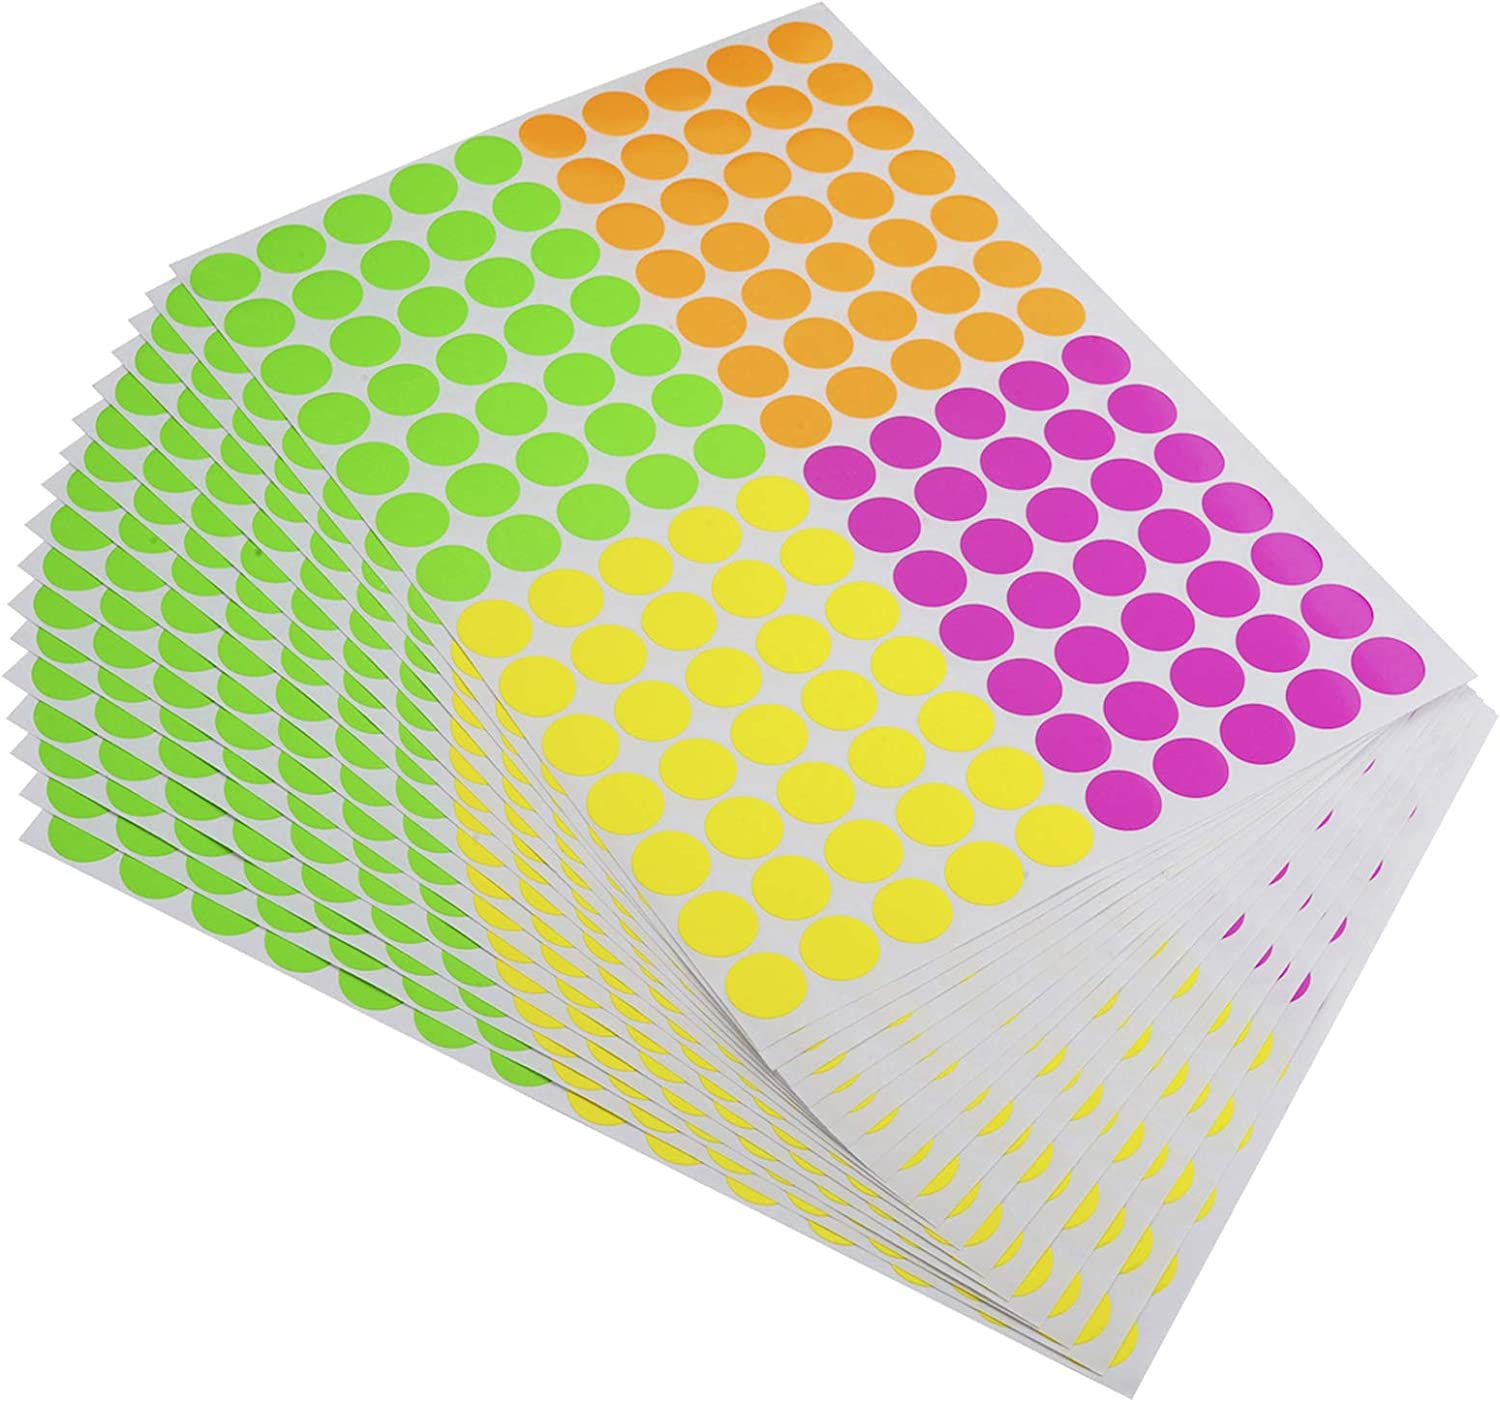 ONUPGO Pack of 2240 Round Color Dot Labels Circle Ranking Year-end annual account integrated 1st place Coding Sticker